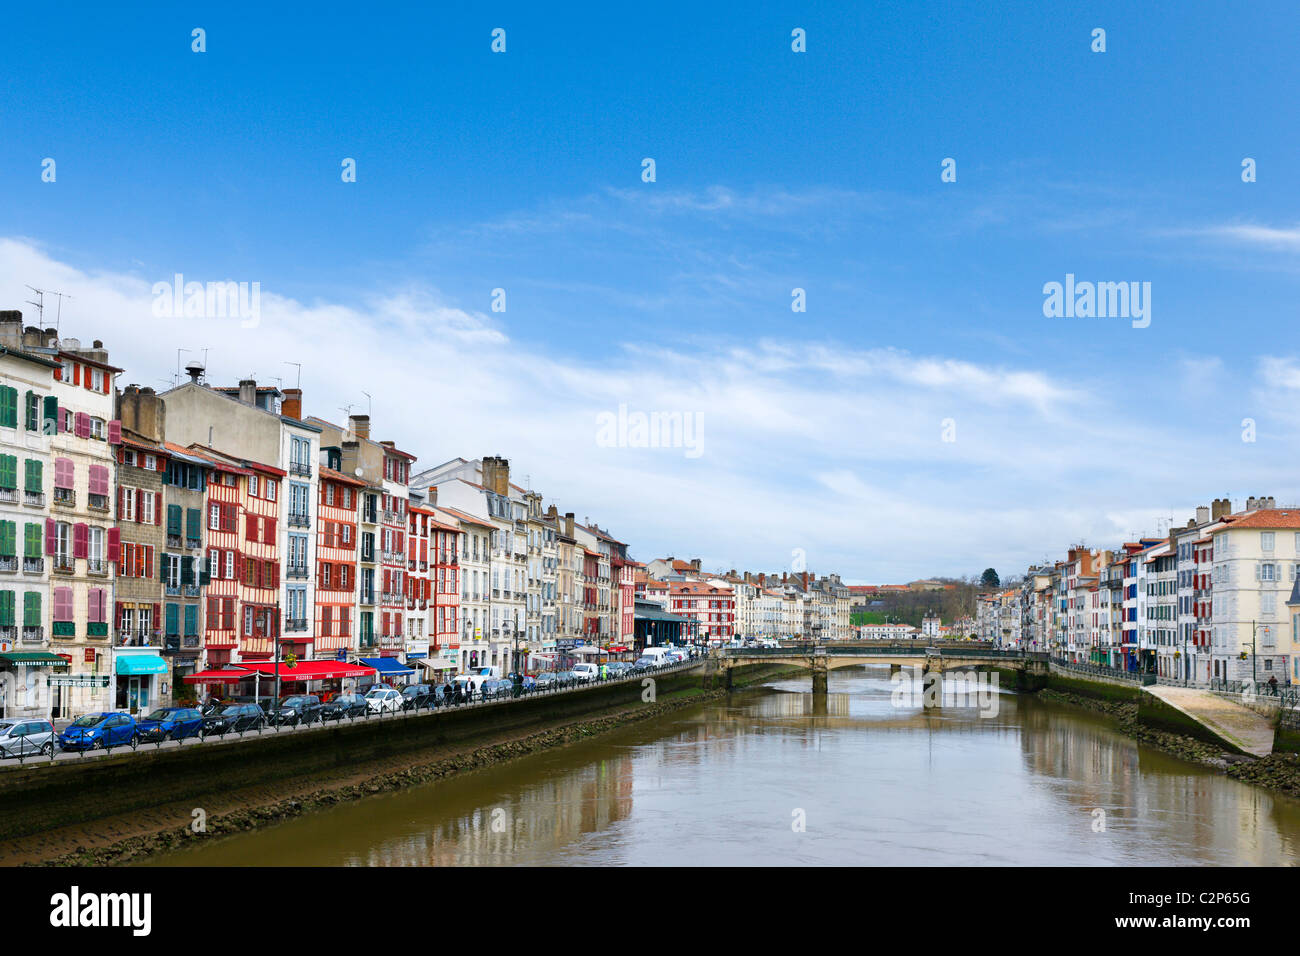 Traditional houses along the banks of the River Nive, Bayonne (Baiona), Cote Basque, Southern France - Stock Image